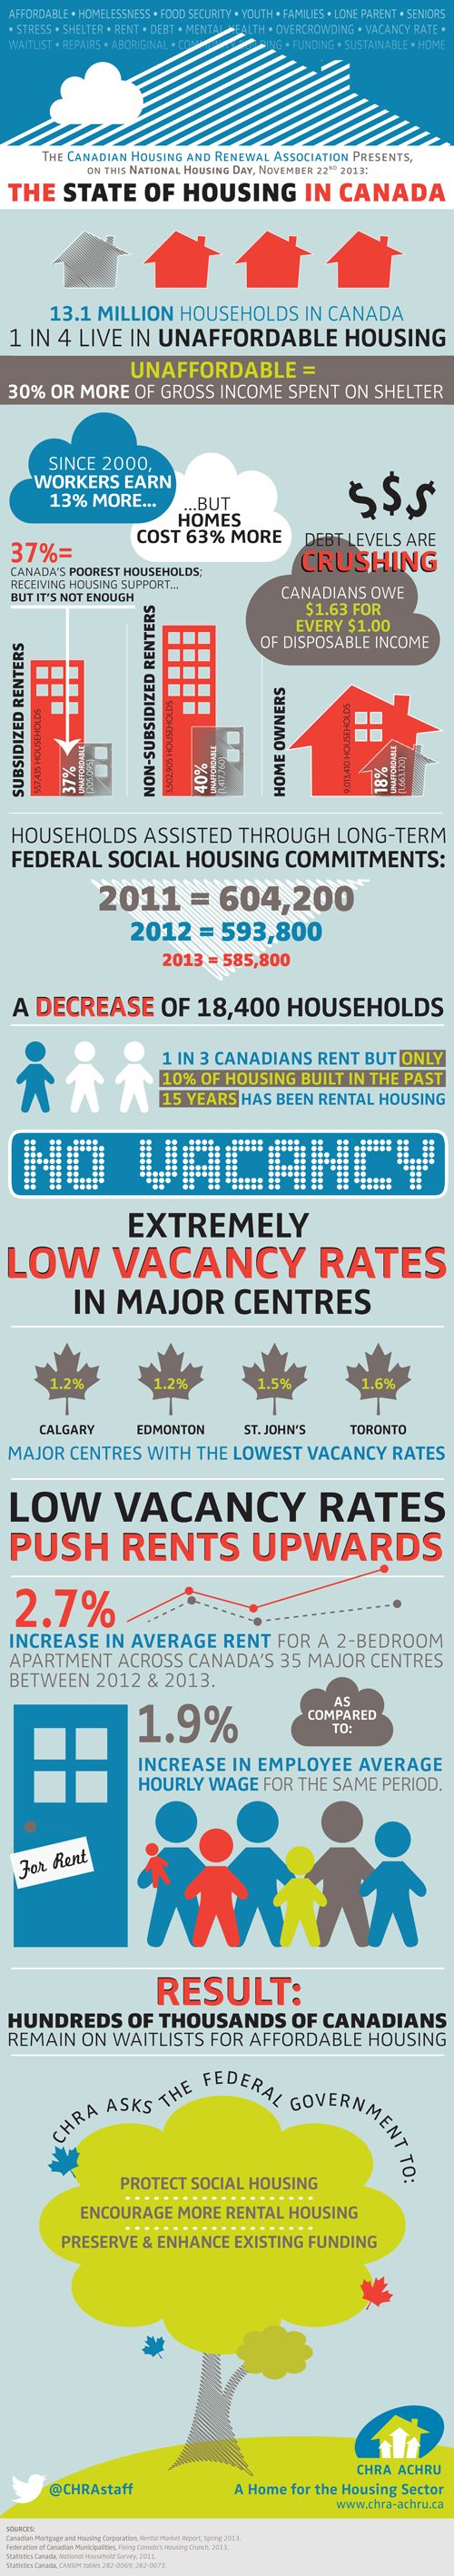 Infographic Wednesday - The State of Housing In Canada http://www.homelesshub.ca/blog/infographic-wednesday-state-housing-canada